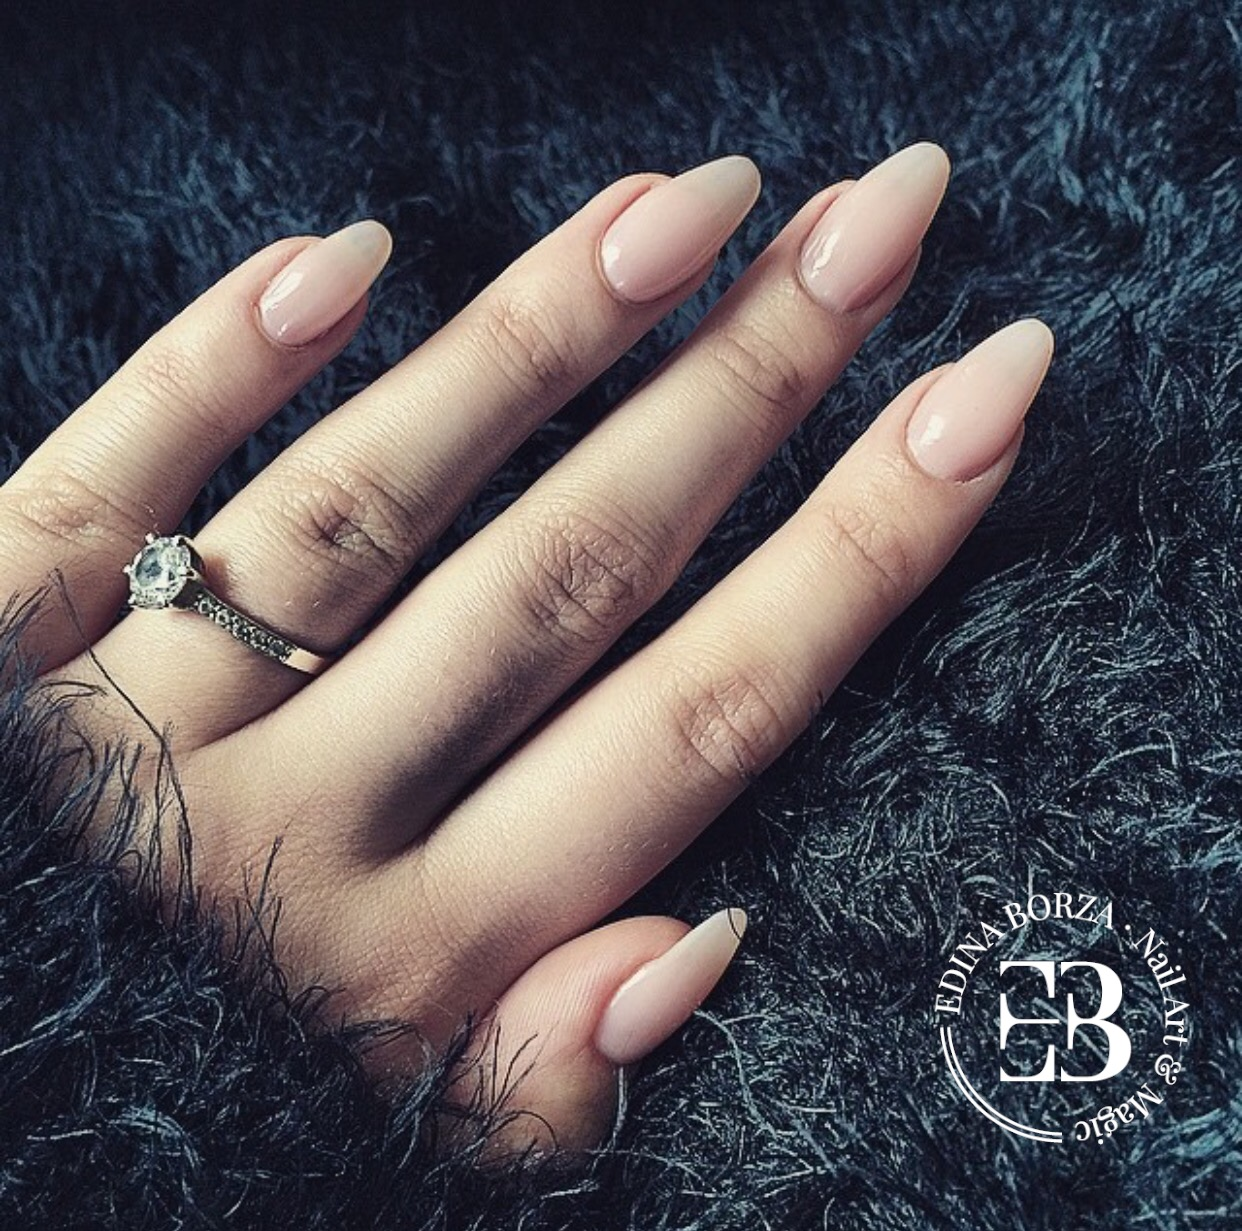 Curs Perfectionare Oja Semipermanenta Edina Borza Nailsmagic